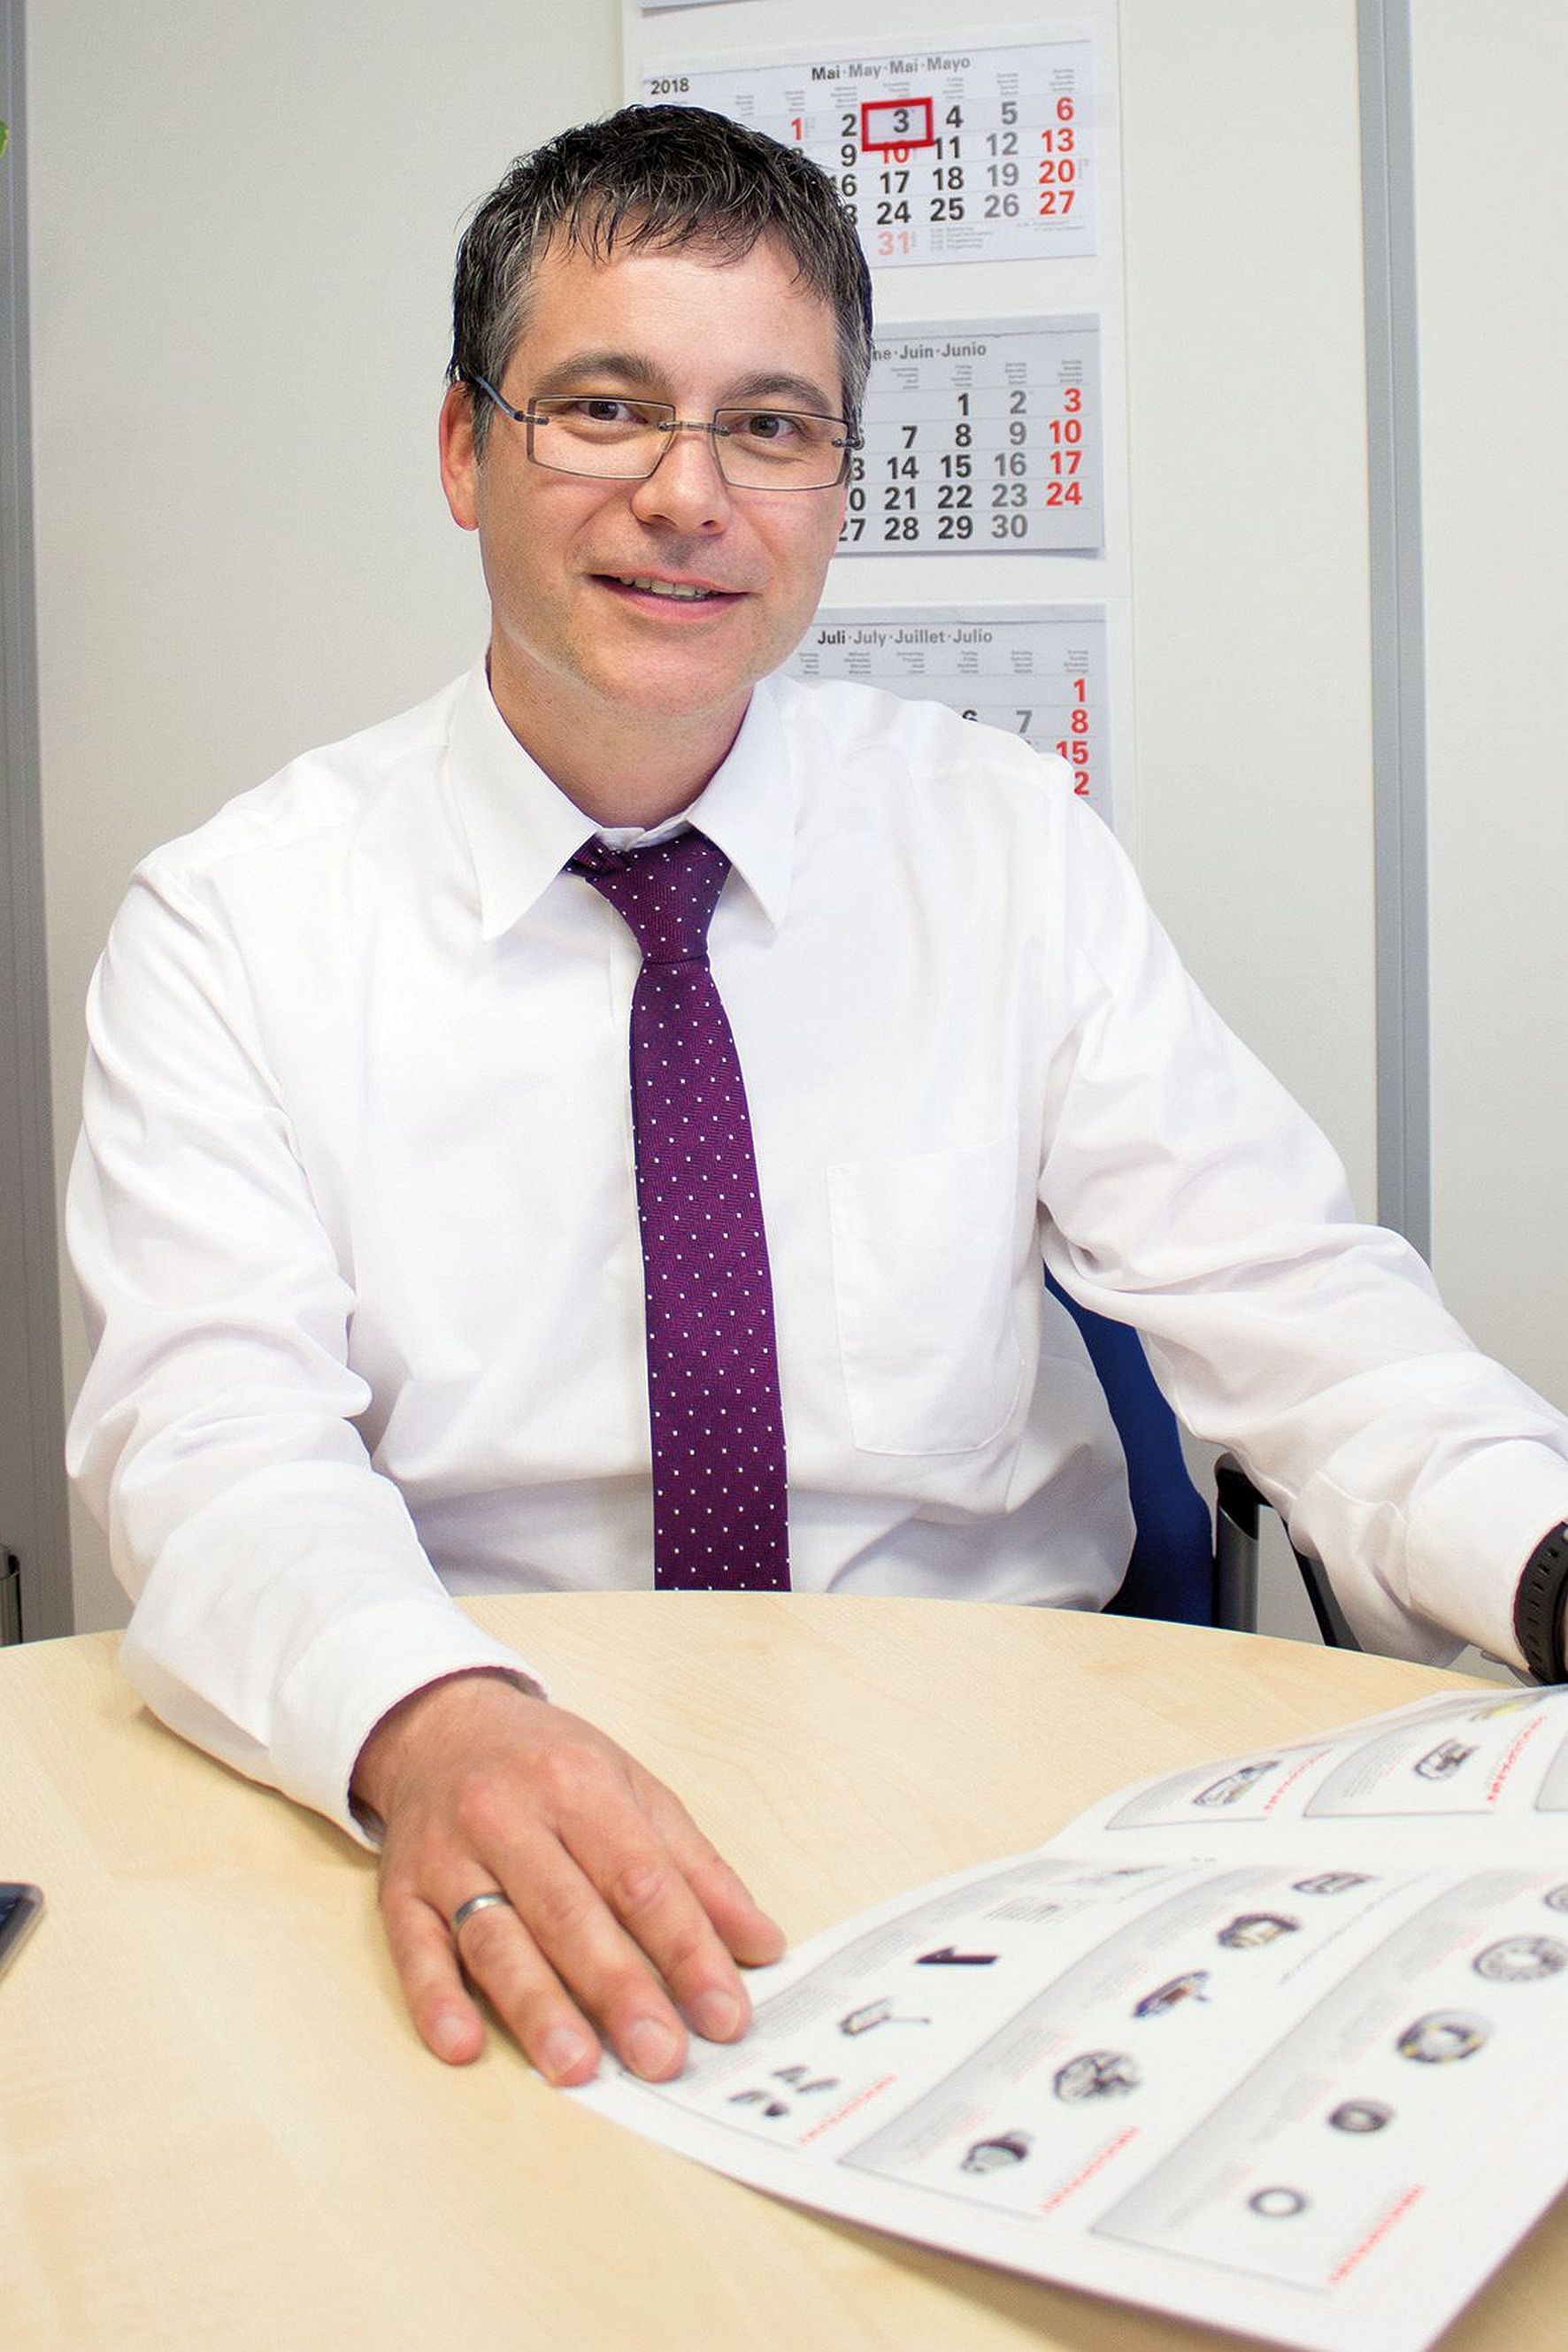 Ringspann RCS Managing director Christian Kny